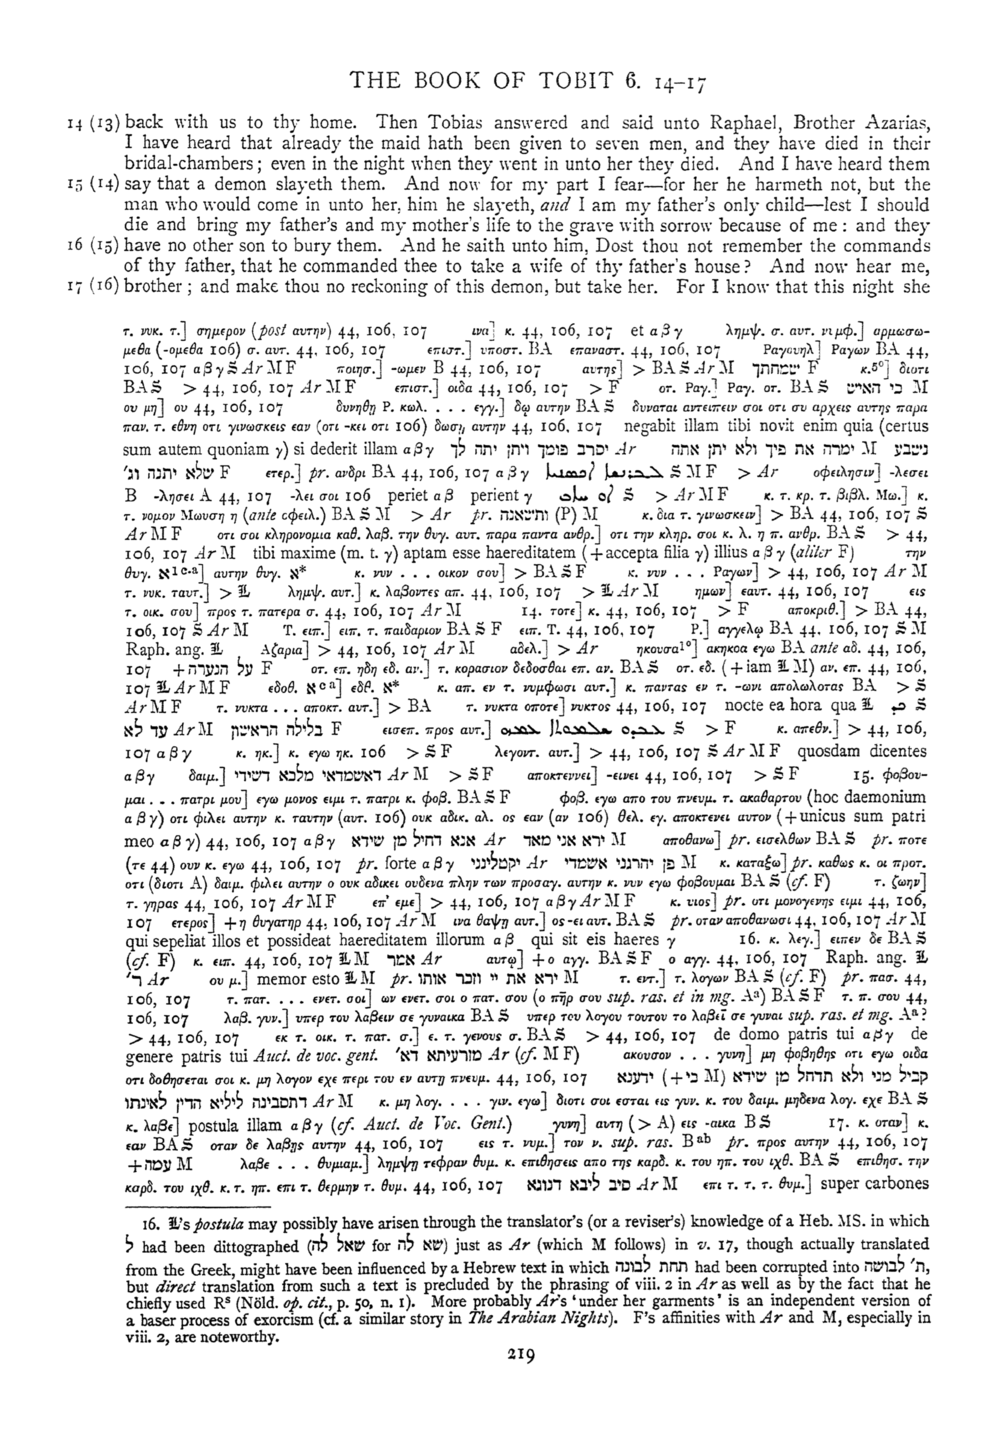 Image of page 219